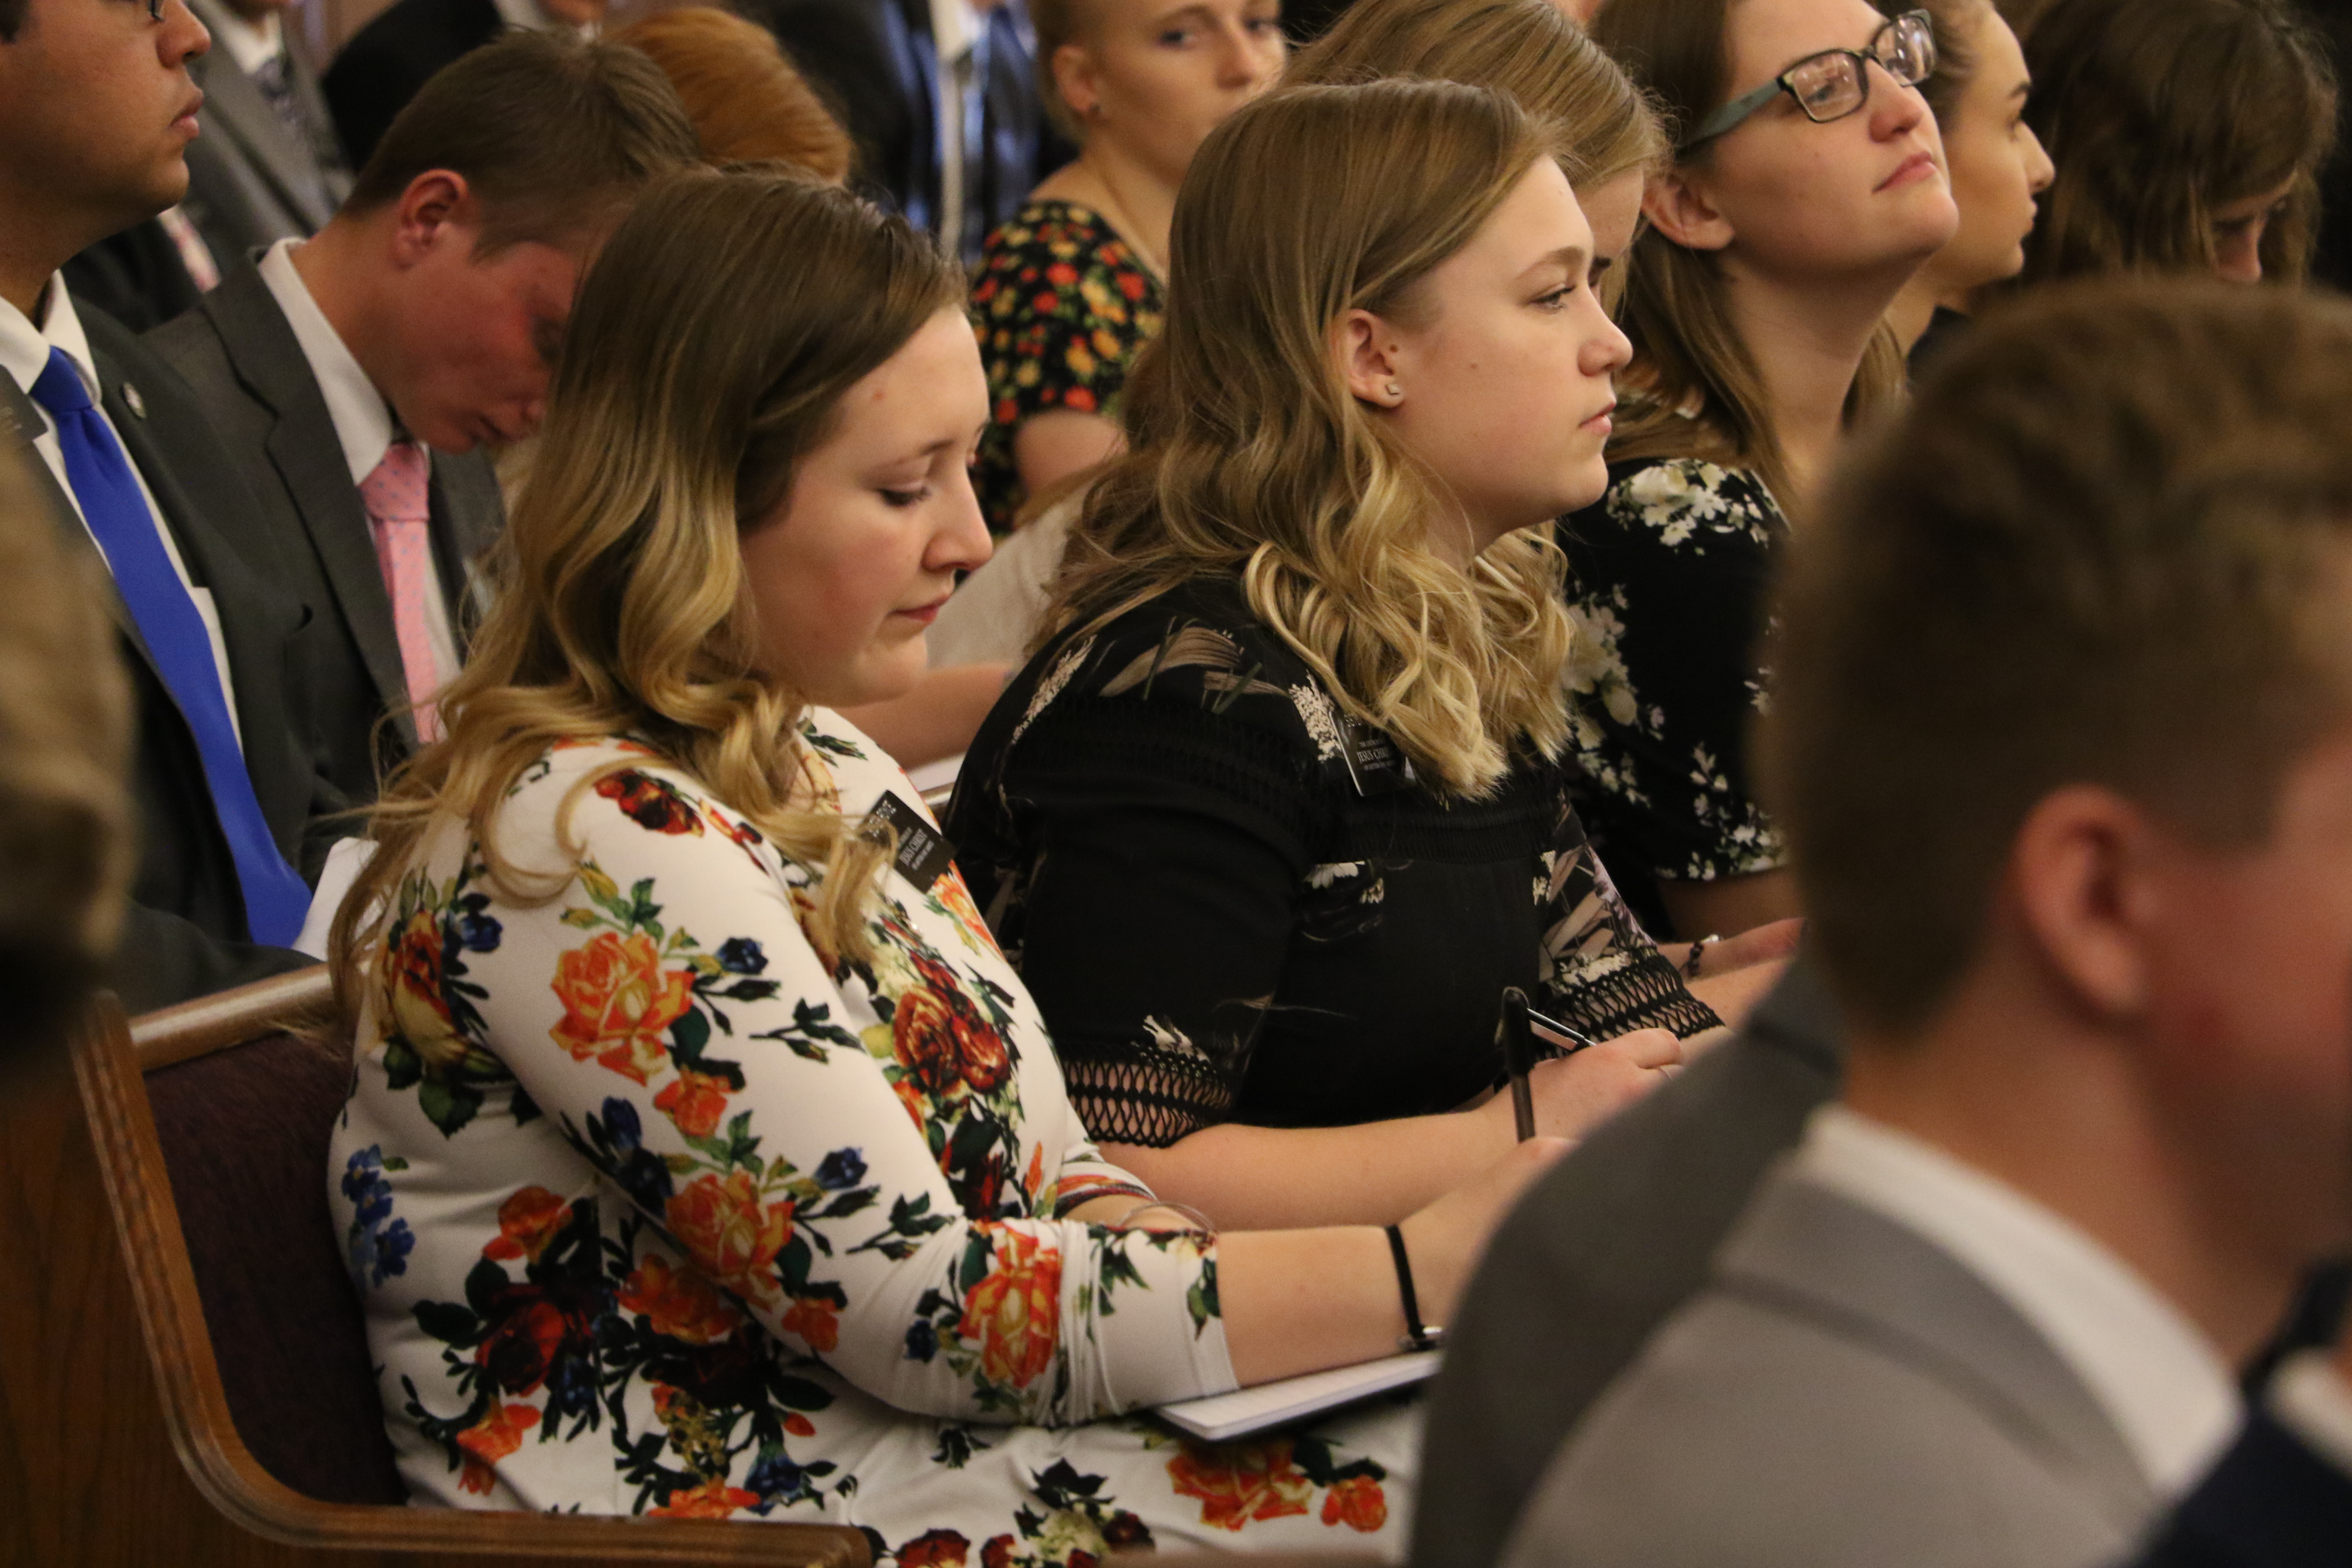 Missionaries serving in the Louisiana Baton Rouge Mission take notes during a devotional with Elder Quentin L. Cook of the Quorum of the Twelve Apostles on Saturday, Nov. 16, 2019, in Baton Rouge, Louisiana.